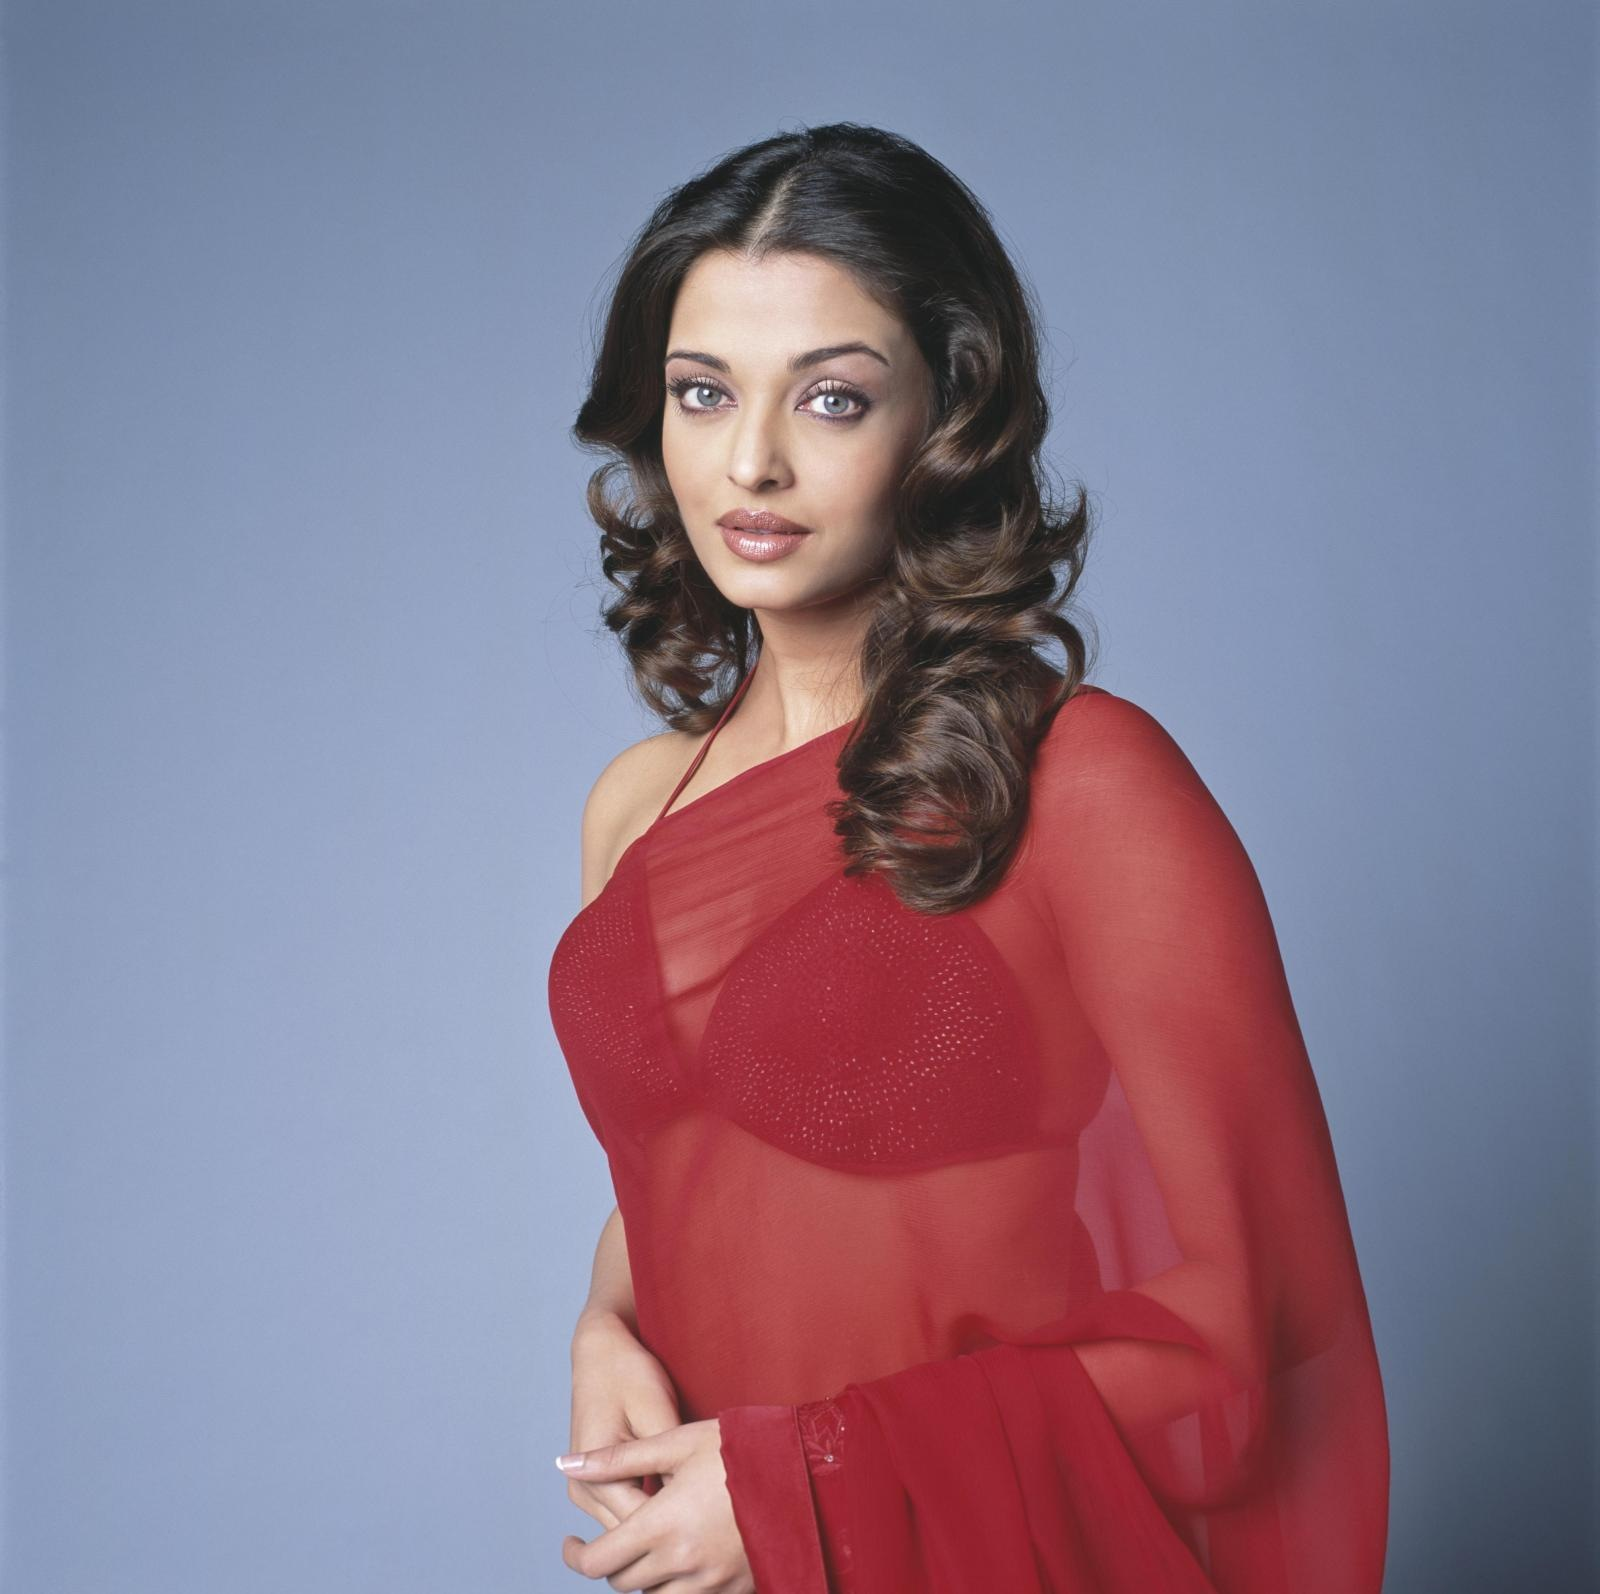 Aishwarya Rai Hot Saree in Endhiran Aishwarya Rai in Red Saree